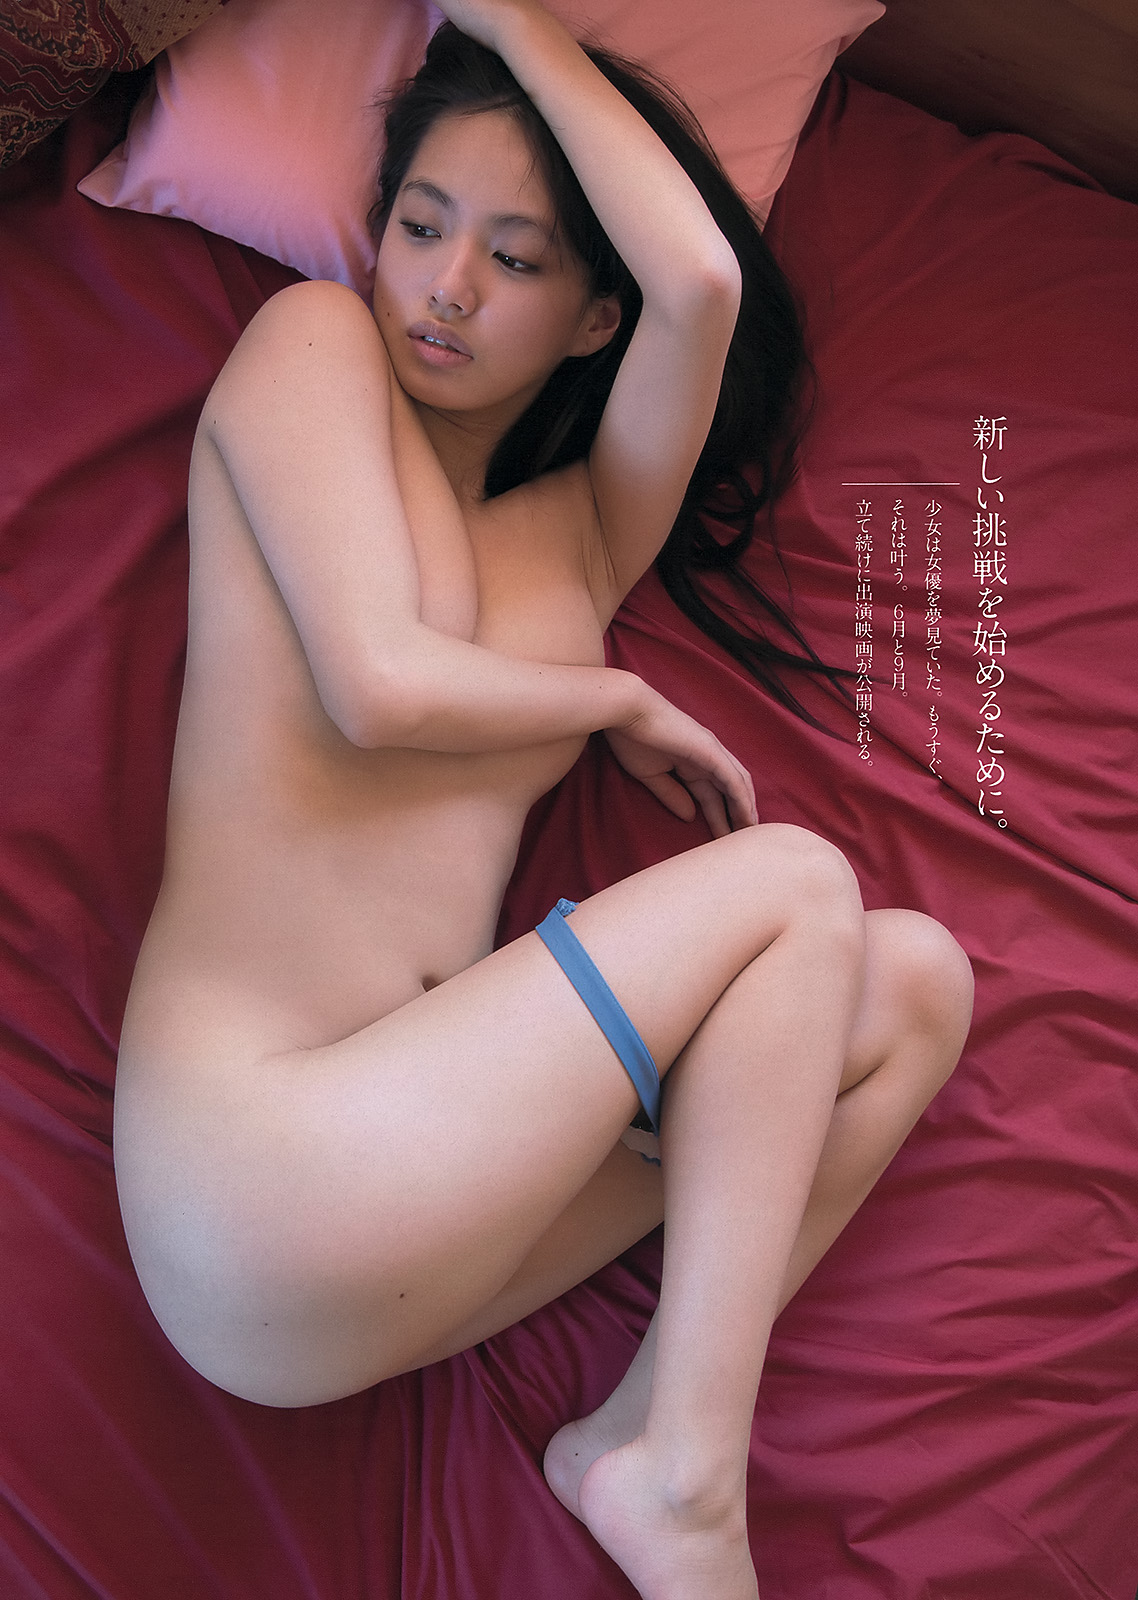 Scanlover Asian 76